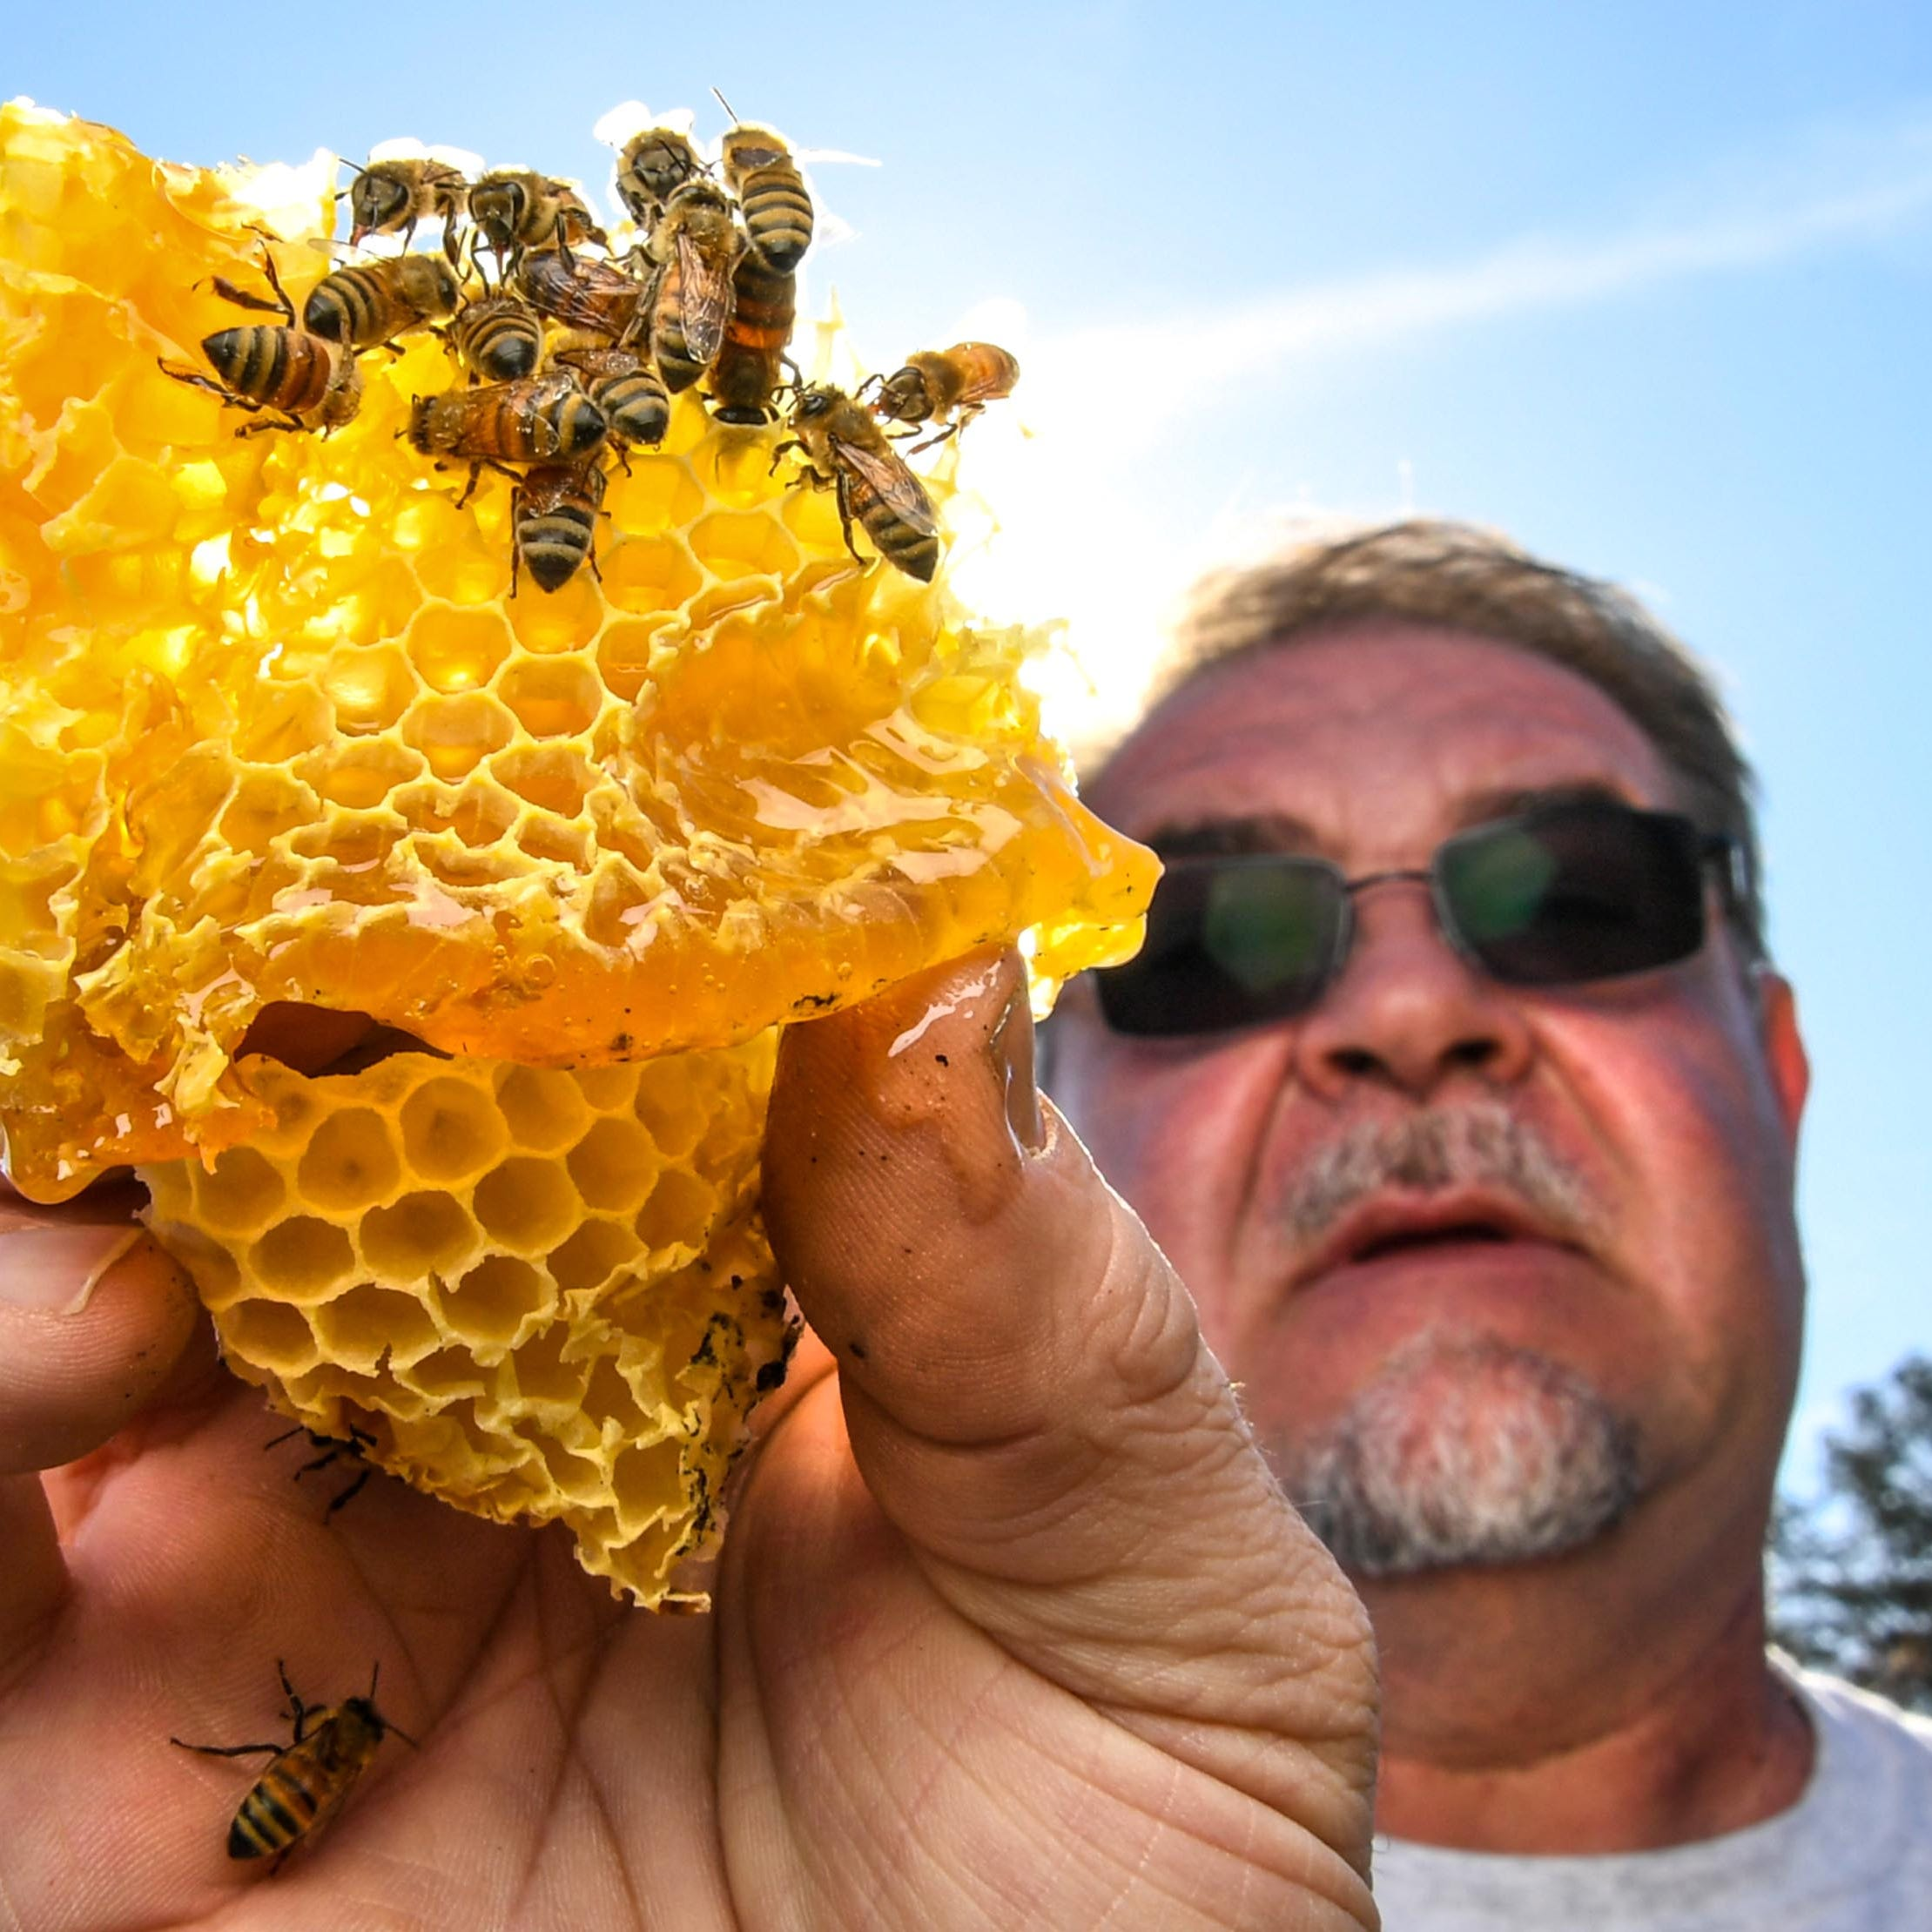 Here's why Pickens County beekeeper brought 46 million bees into the Upstate SC